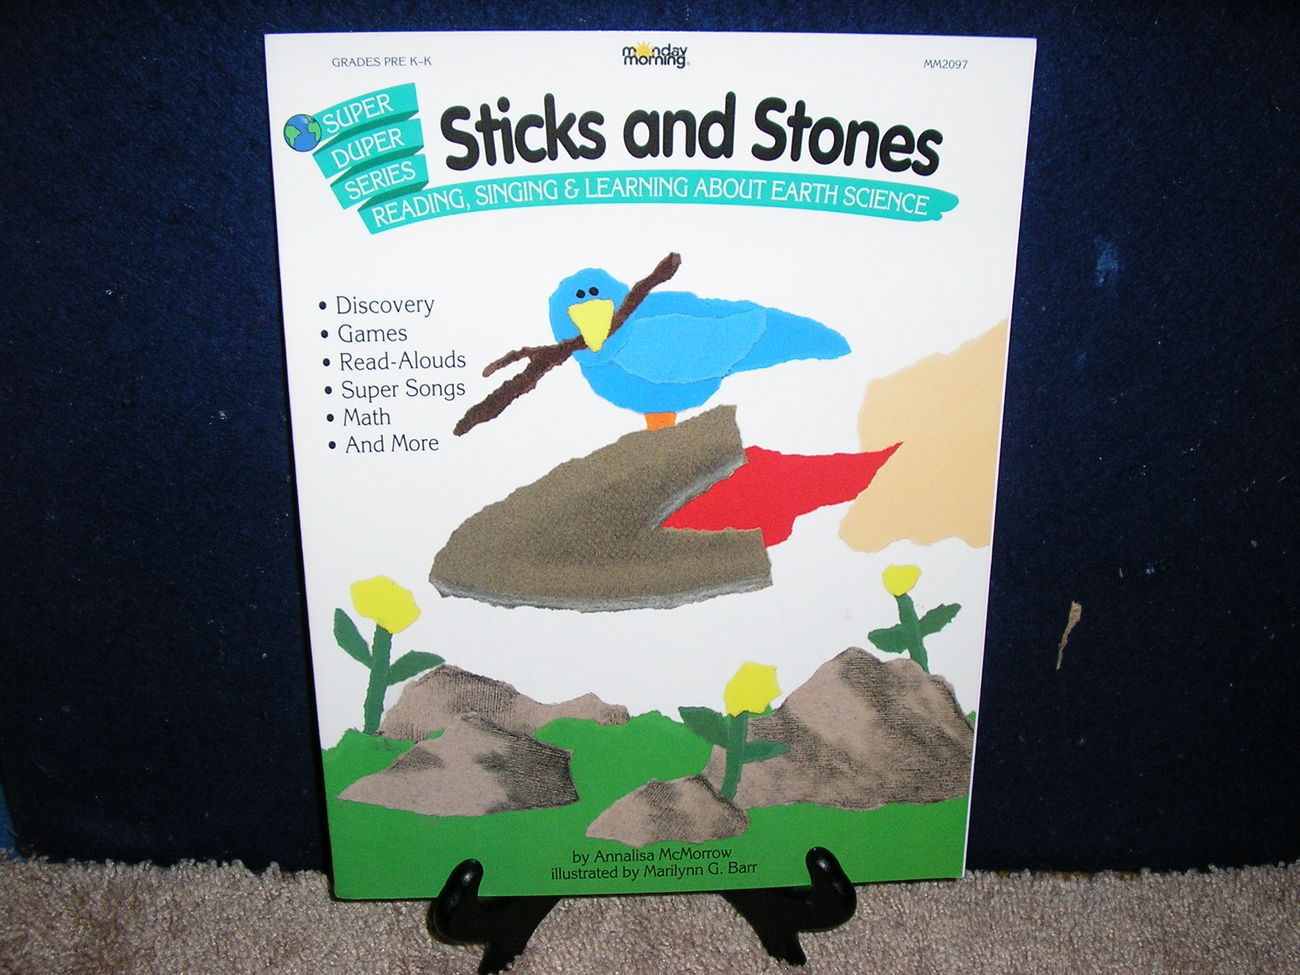 Sticks and Stones Super-Duper Series by Annalisa McMorrow